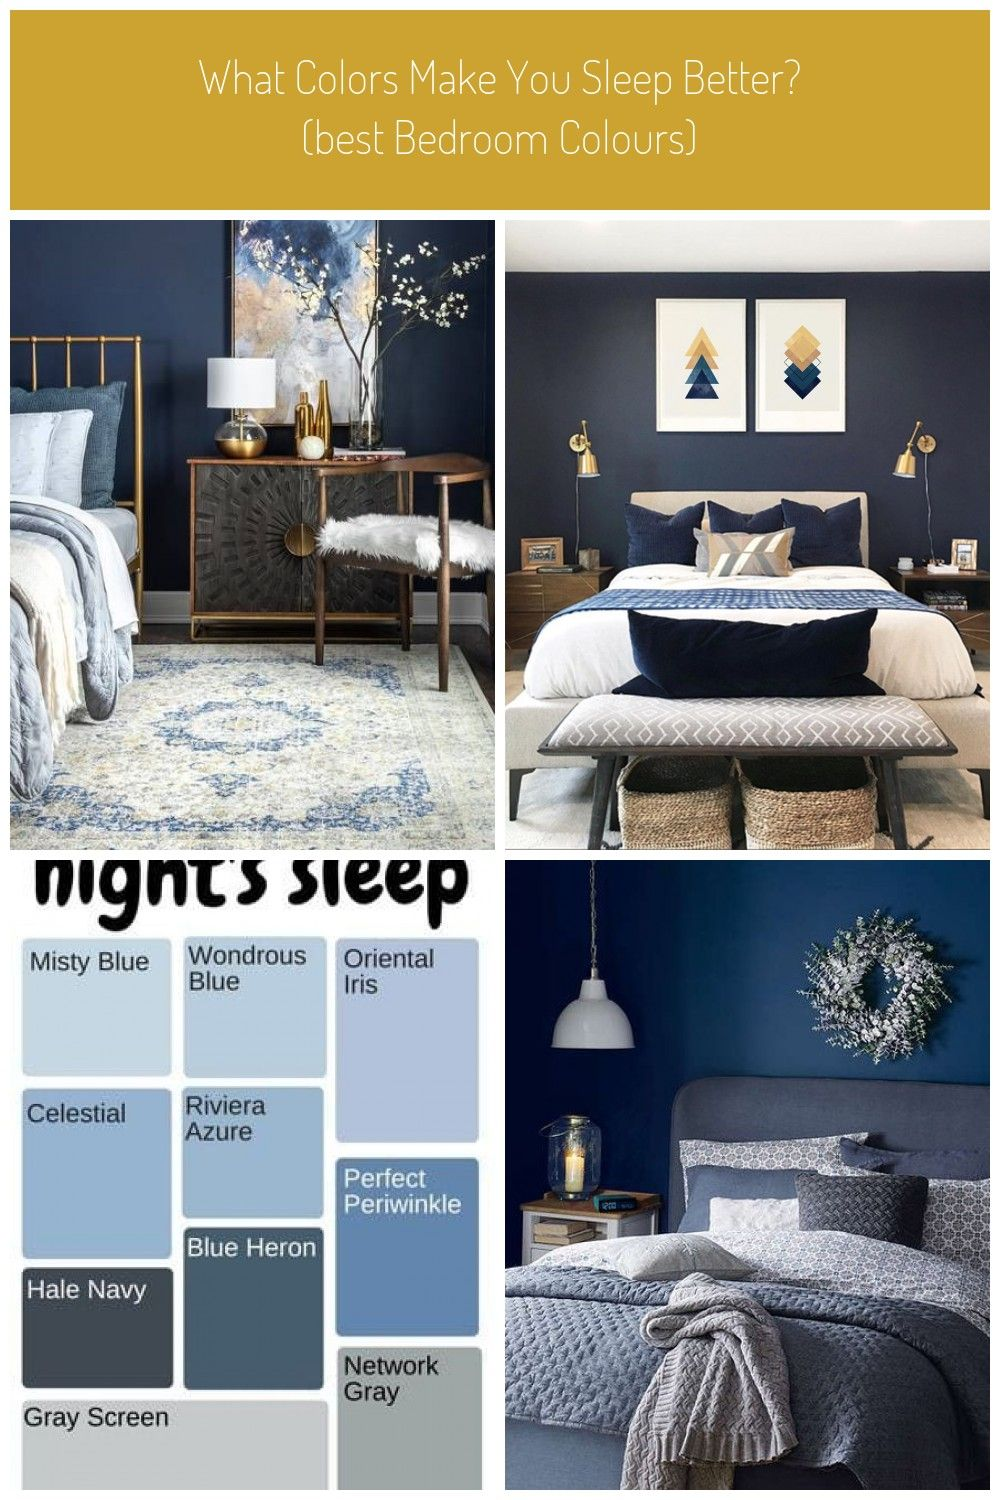 Distressed Blue Persian Area Rug In Bedroom With Wood Tones Gold Accents And Dark Blue Wall Blue Bedroom Bosphorus Distressed Persian Blue Rug Dark Blue Walls Blue Walls Best Bedroom Colors